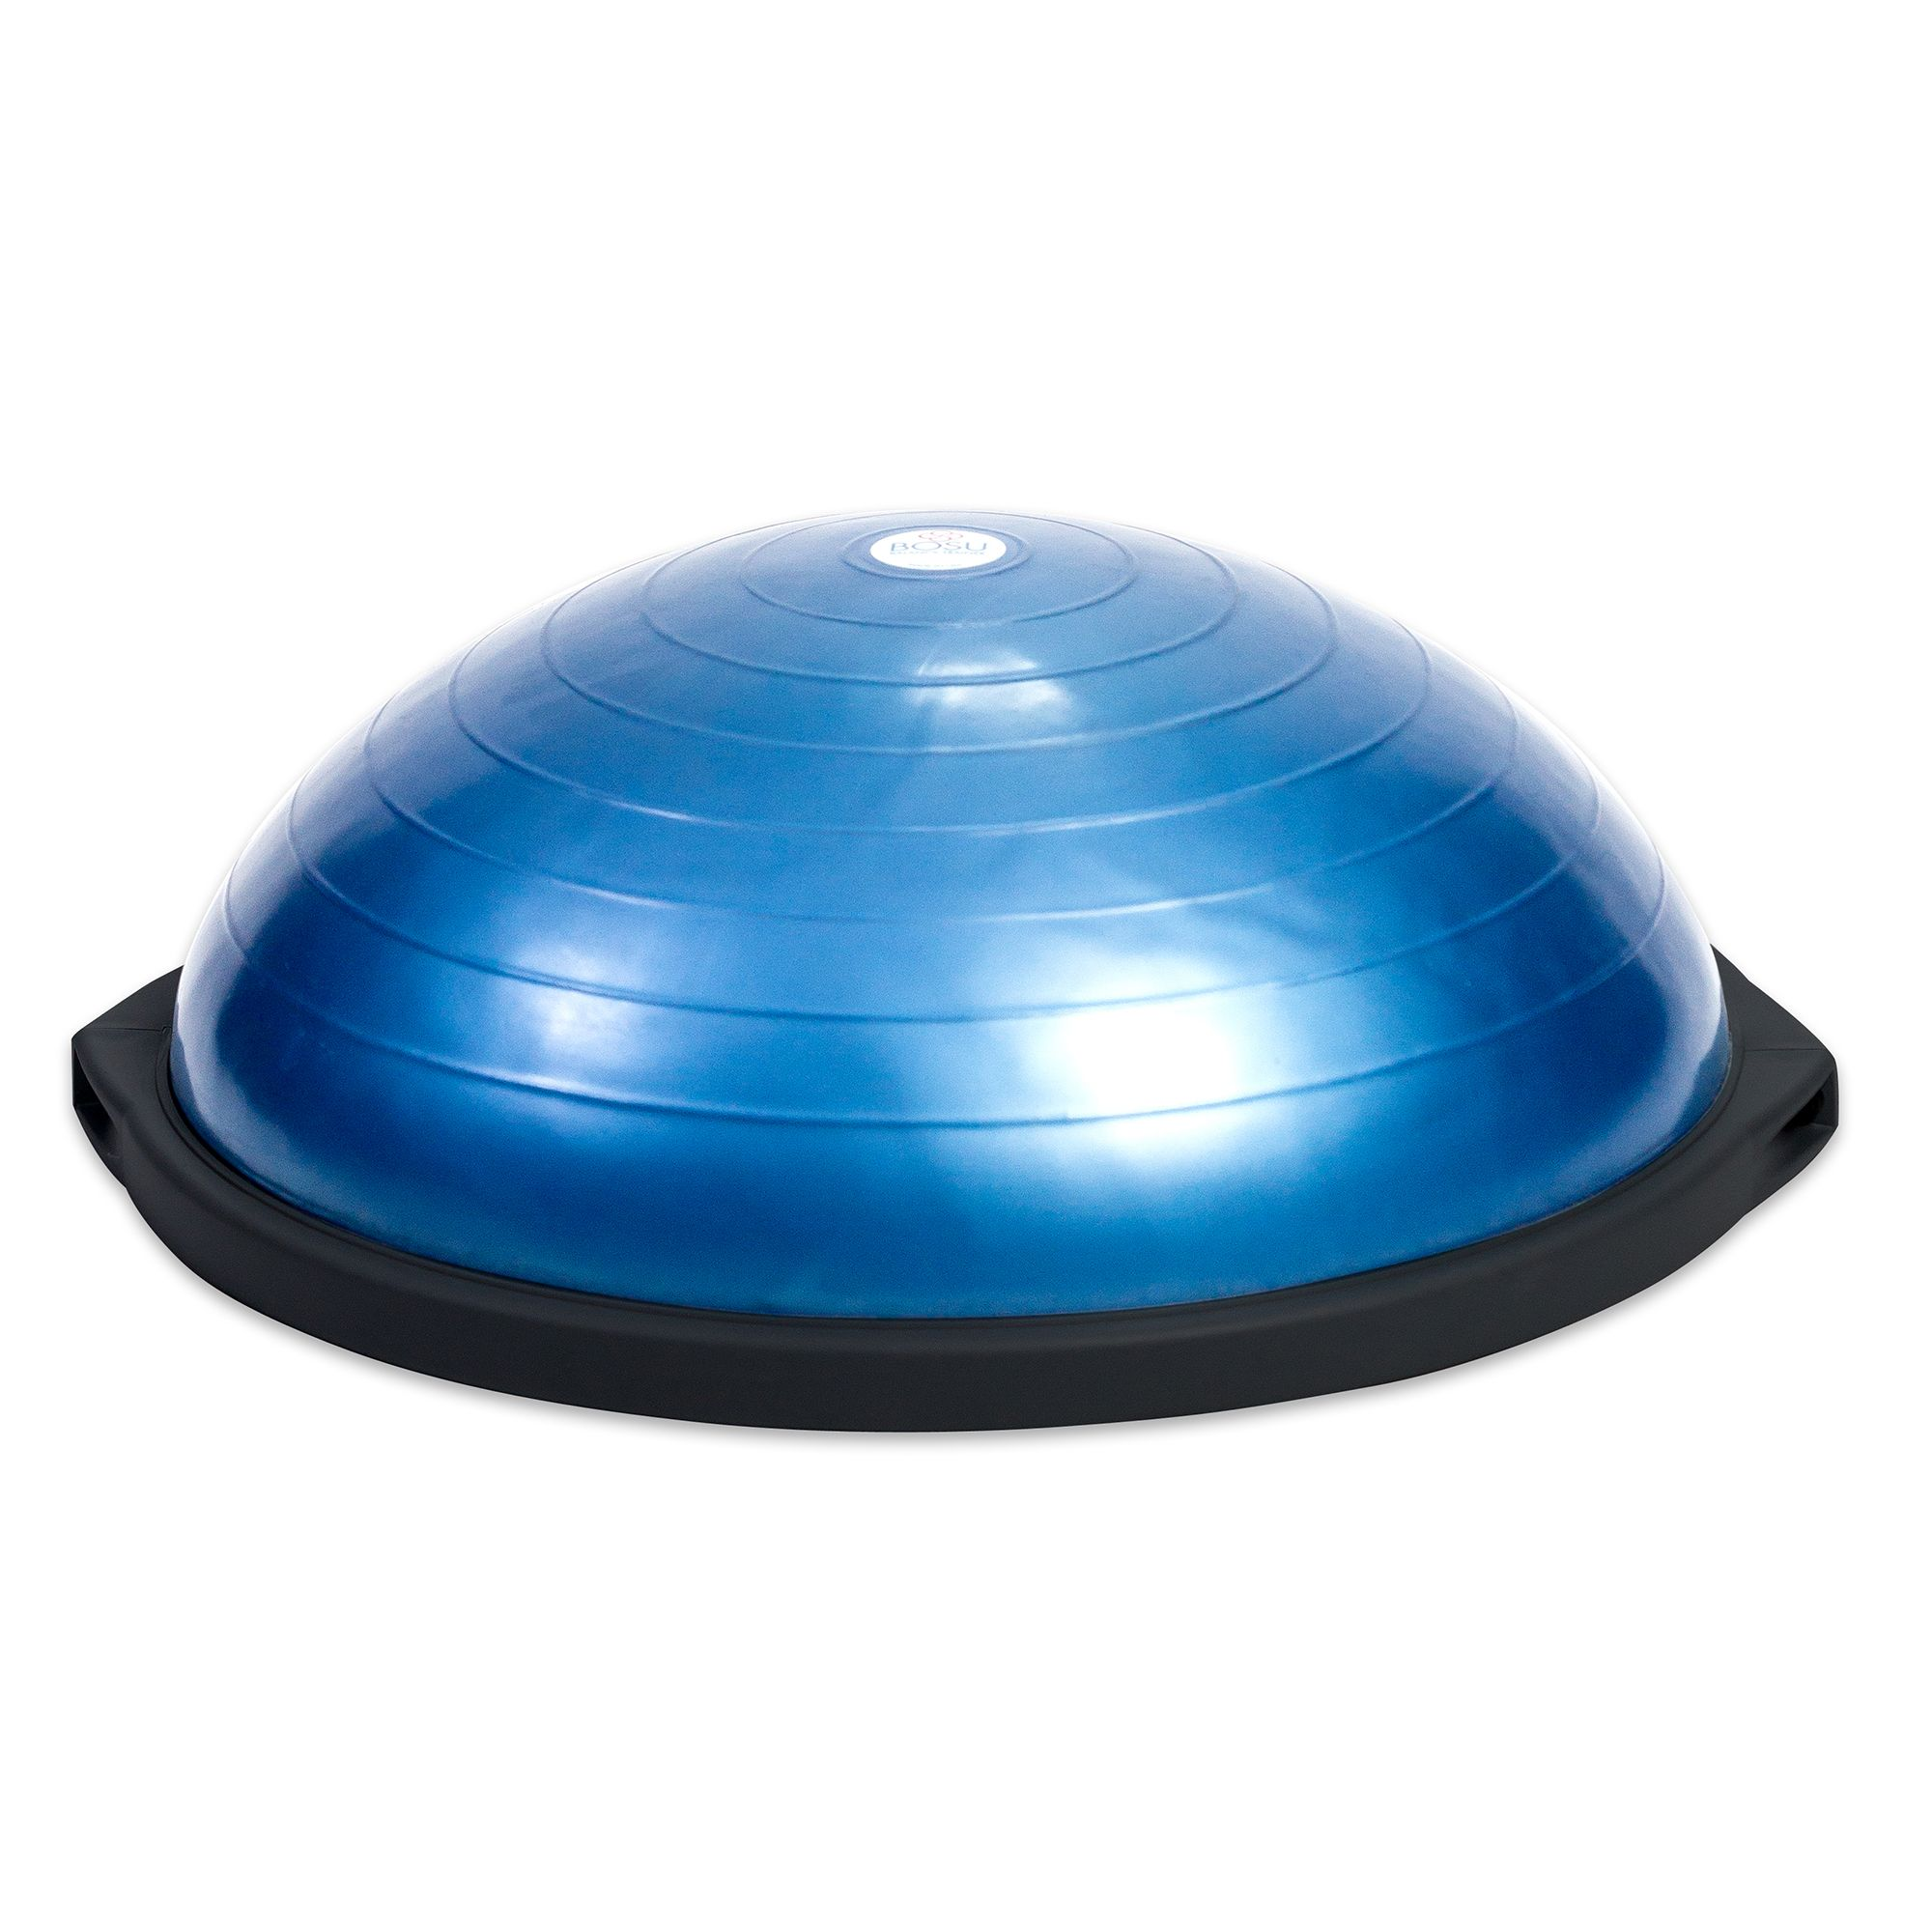 BOSU Balance Trainer in Blue Bed Bath & Beyond